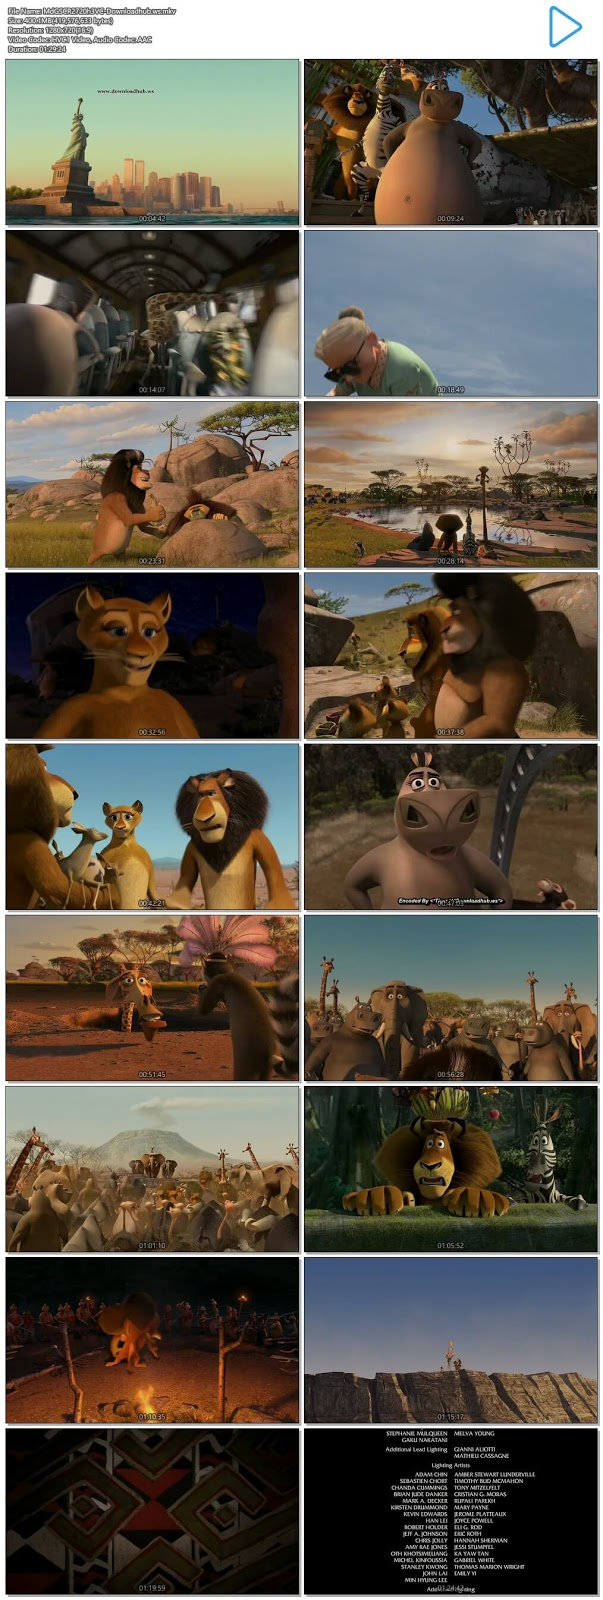 Madagascar Escape 2 Africa 2008 Hindi Dual Audio 720p HEVC BluRay Free Download